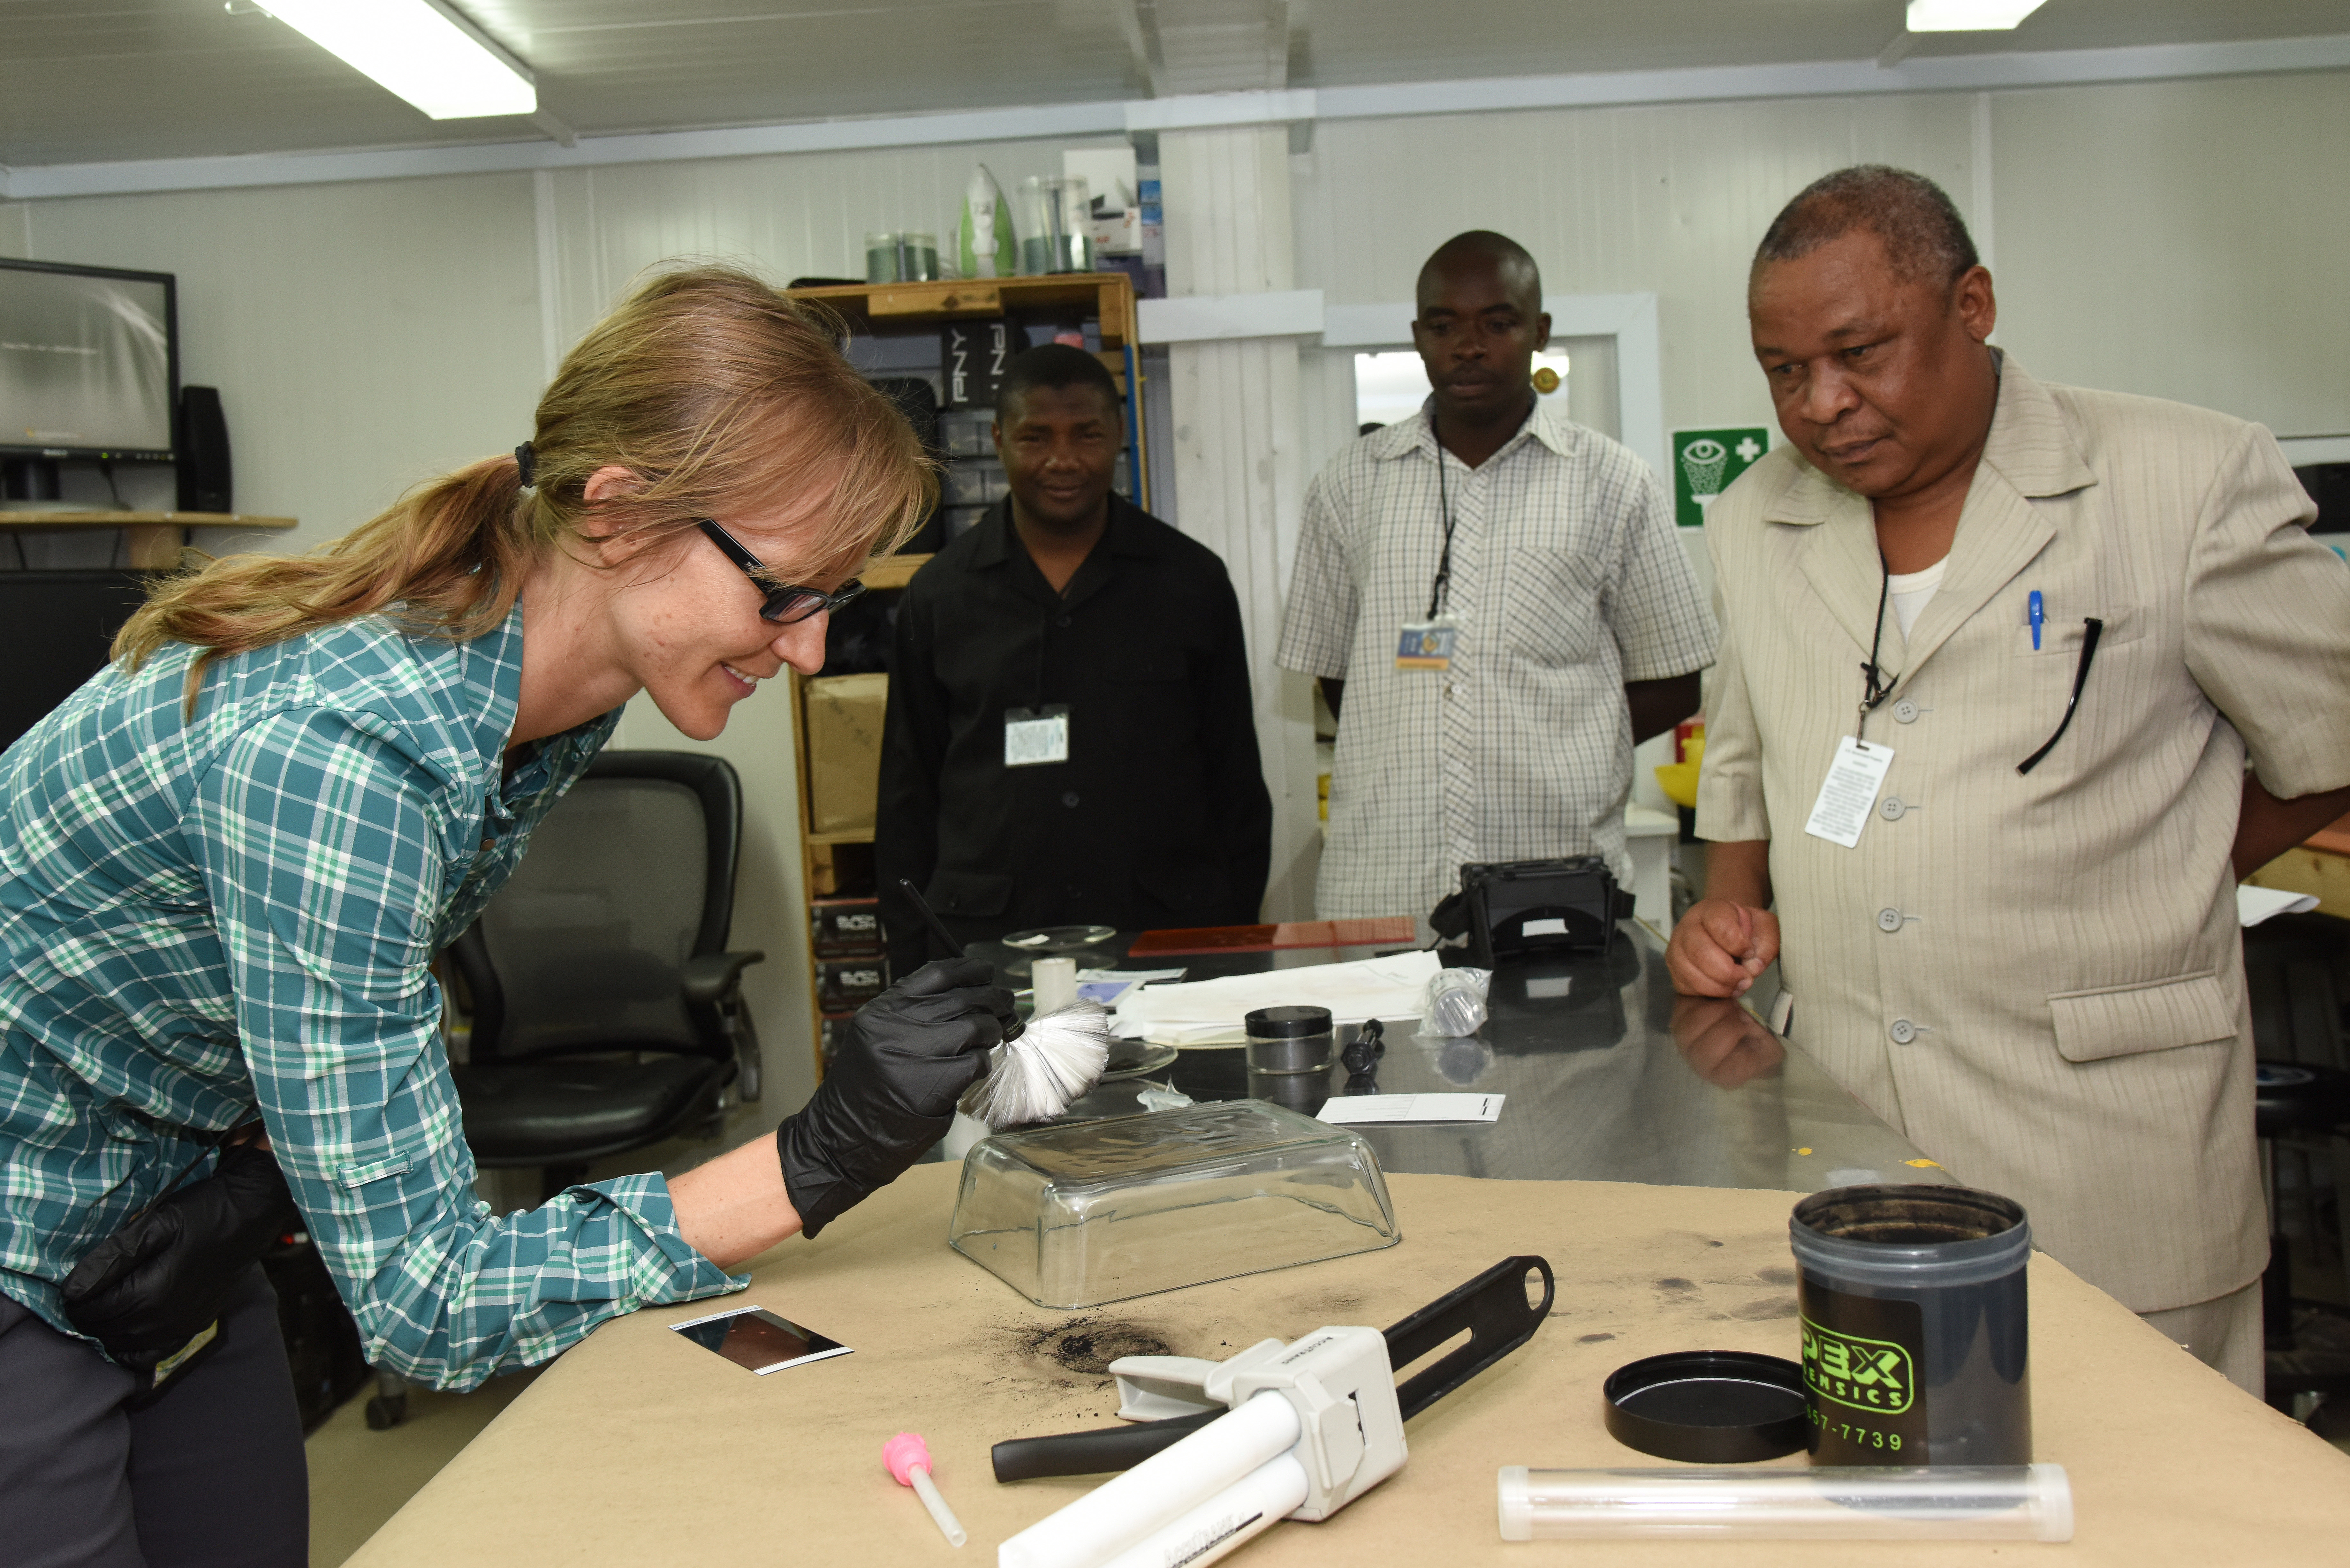 A Joint Theater Forensic Analysis Center certified latent print examiner, instructs Tanzanian Defense Force service members on how to dust for fingerprints using black powder at Camp Lemonnier, Djibouti, June 23, 2015.  The JTFAC offers training to U.S. and partner nation forces on cellular phone exploitation, unknown substance identification and fingerprint and latent printing.  (U.S. Air Force photo by Staff Sgt. Maria Bowman)